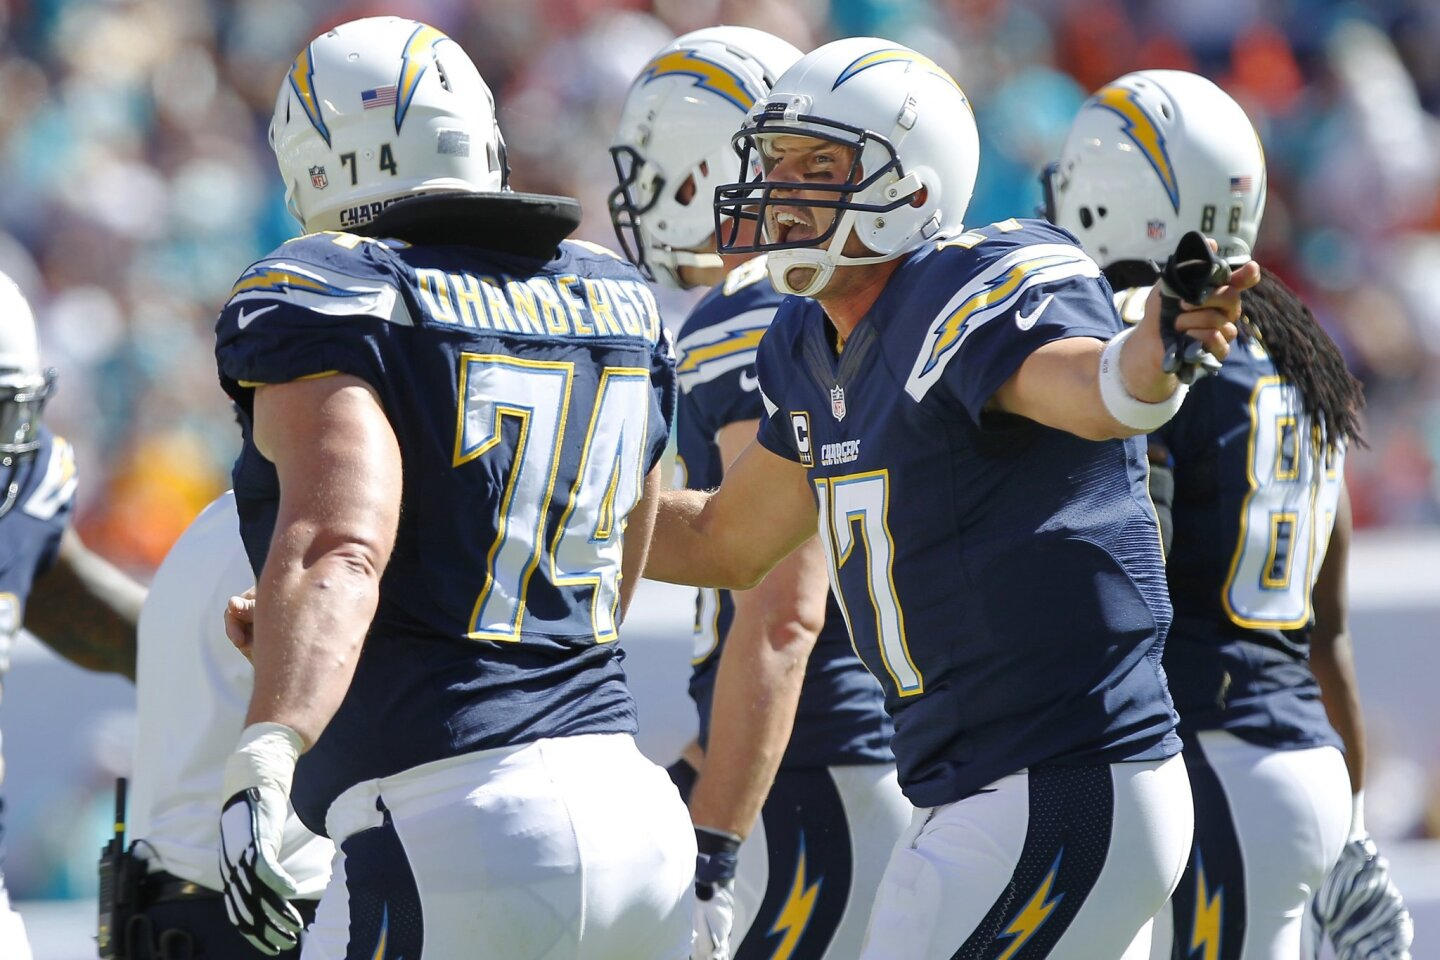 Chargers at Miami 2014